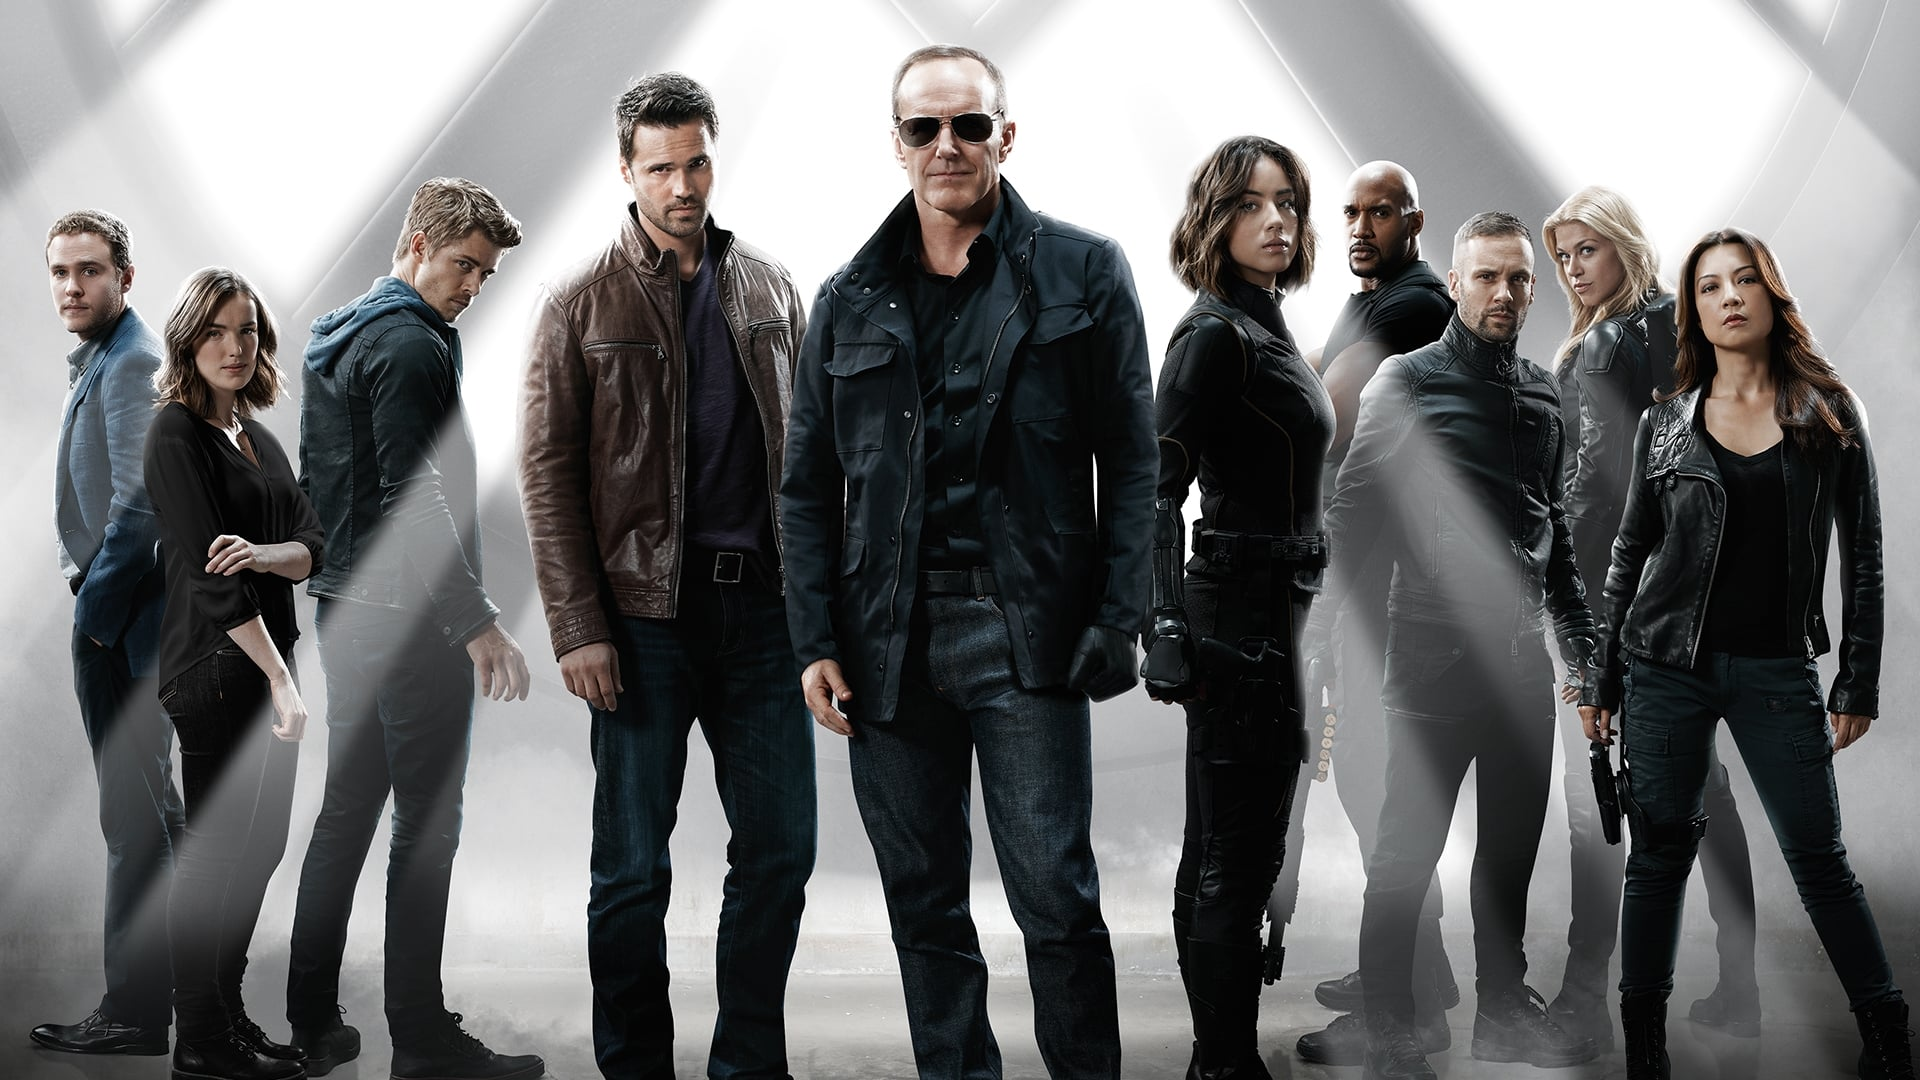 Marvel's Agents of S.H.I.E.L.D. - Season 0 Episode 14 : Academy: Recruitment